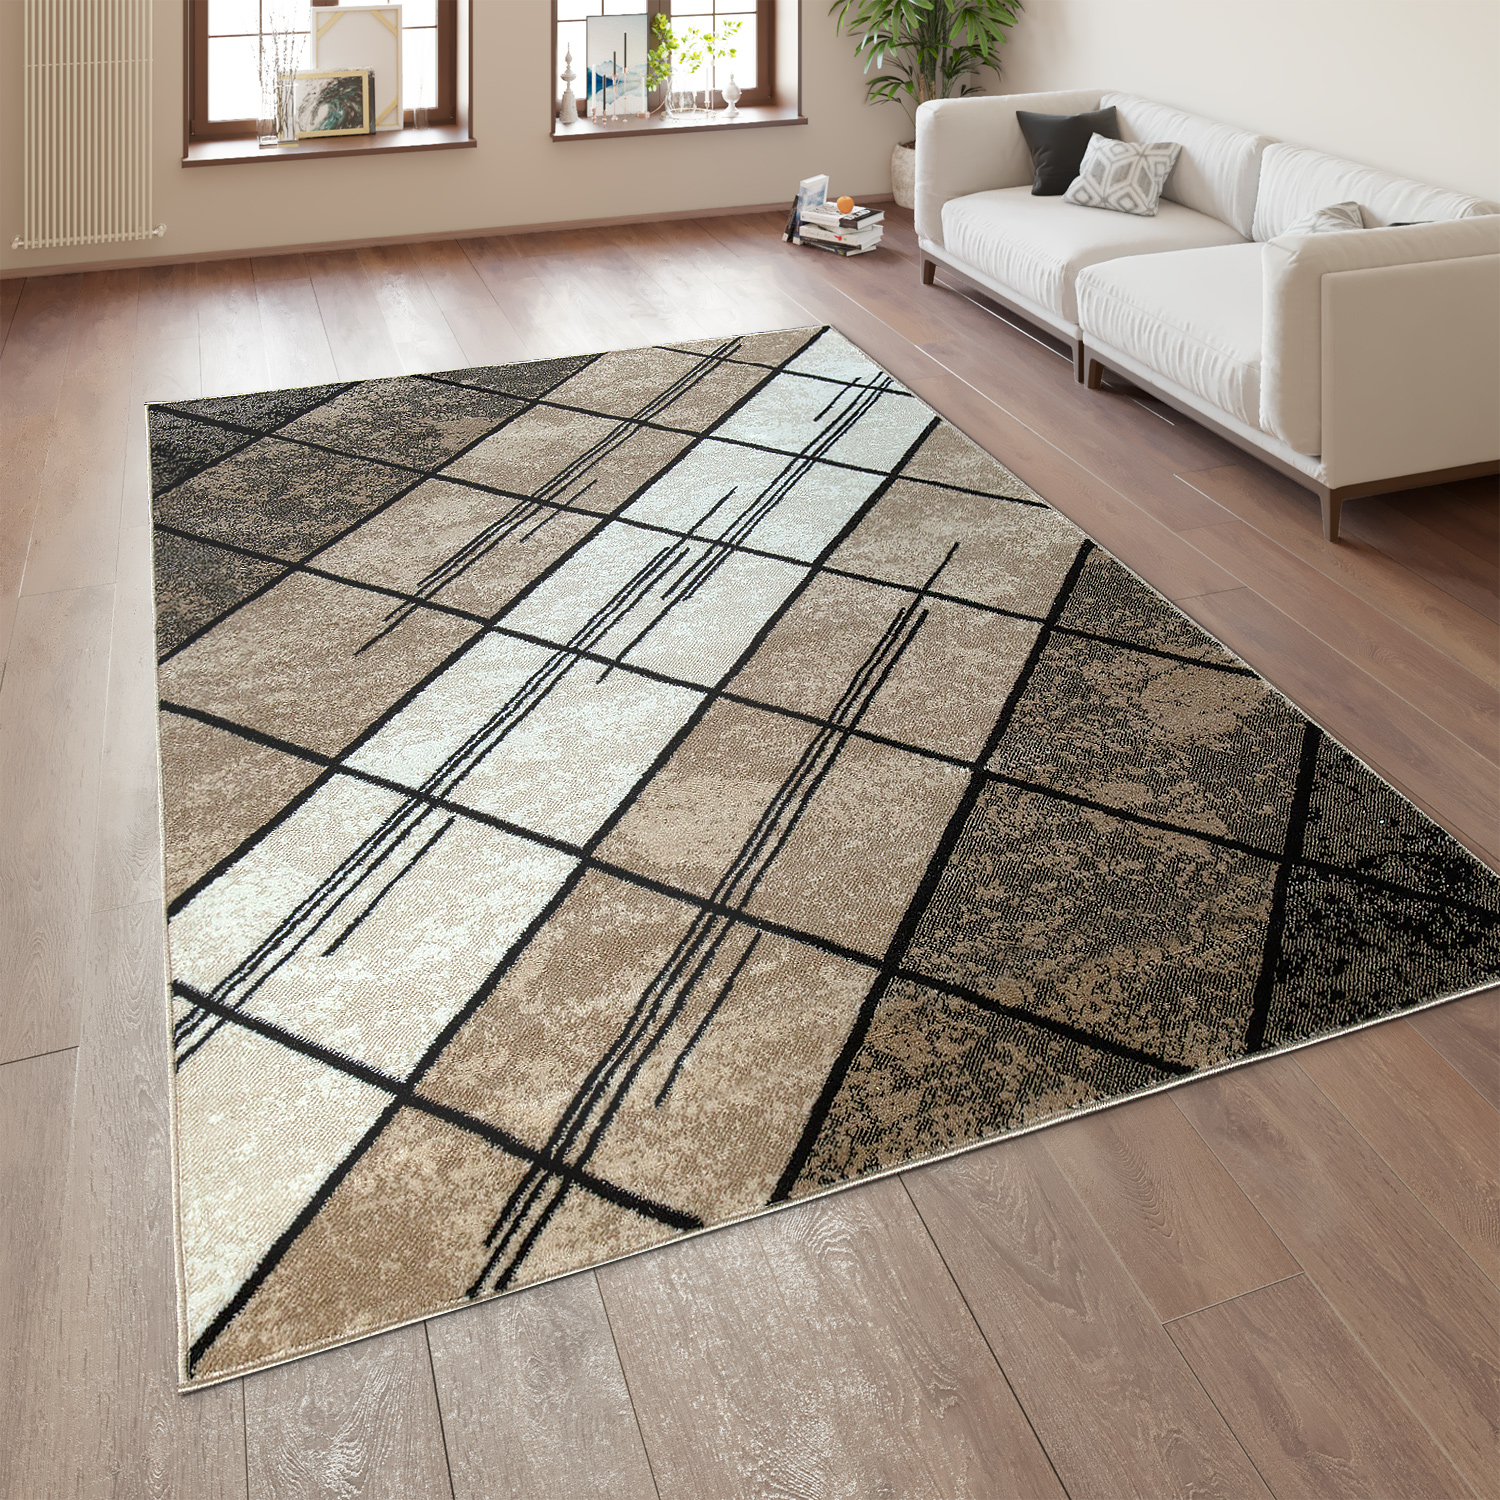 Designer Rug Geometric Pattern Brown Beige